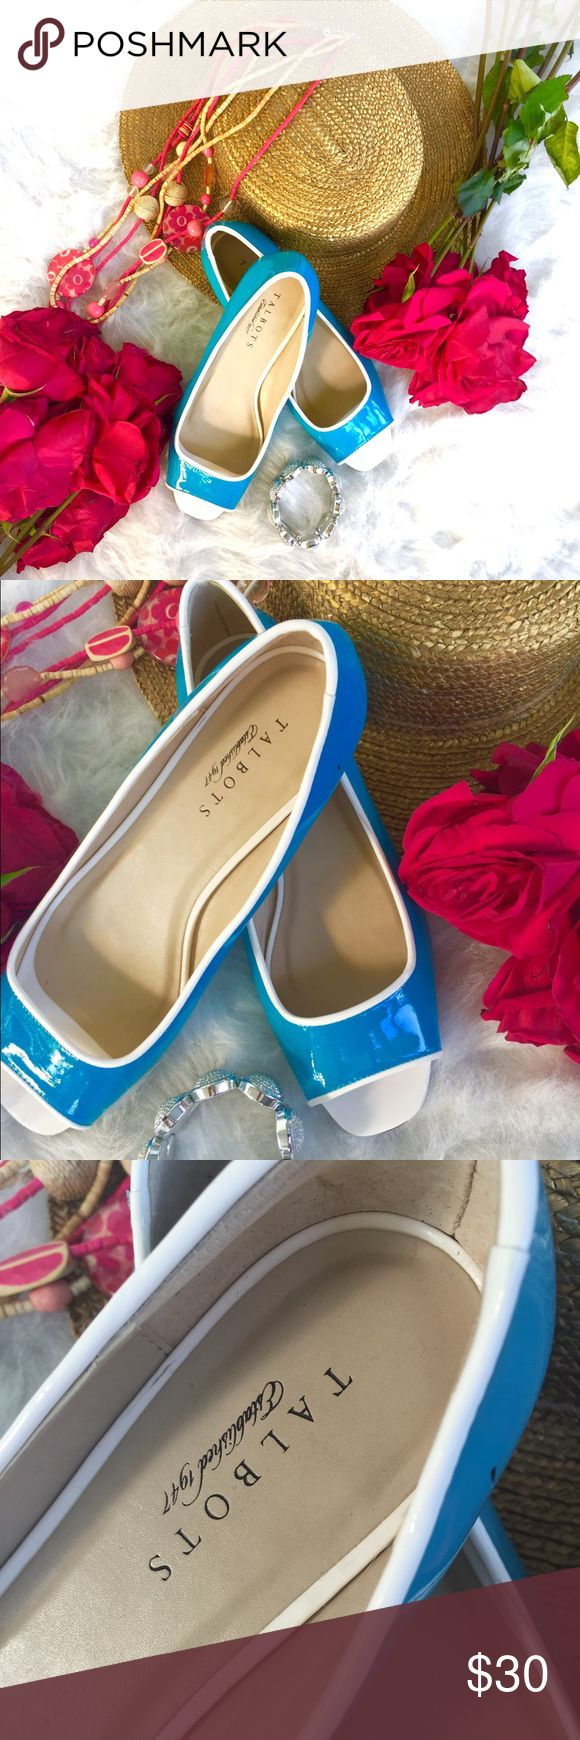 GORGEOUS TALBOTS FLATS❤️ It's NWOT, never worn blue and white flats great with any look. It's super cute and super fashionable. Will be a great addition to your closet. Get the style❤️ make an offer💋 Talbots Shoes Flats & Loafers